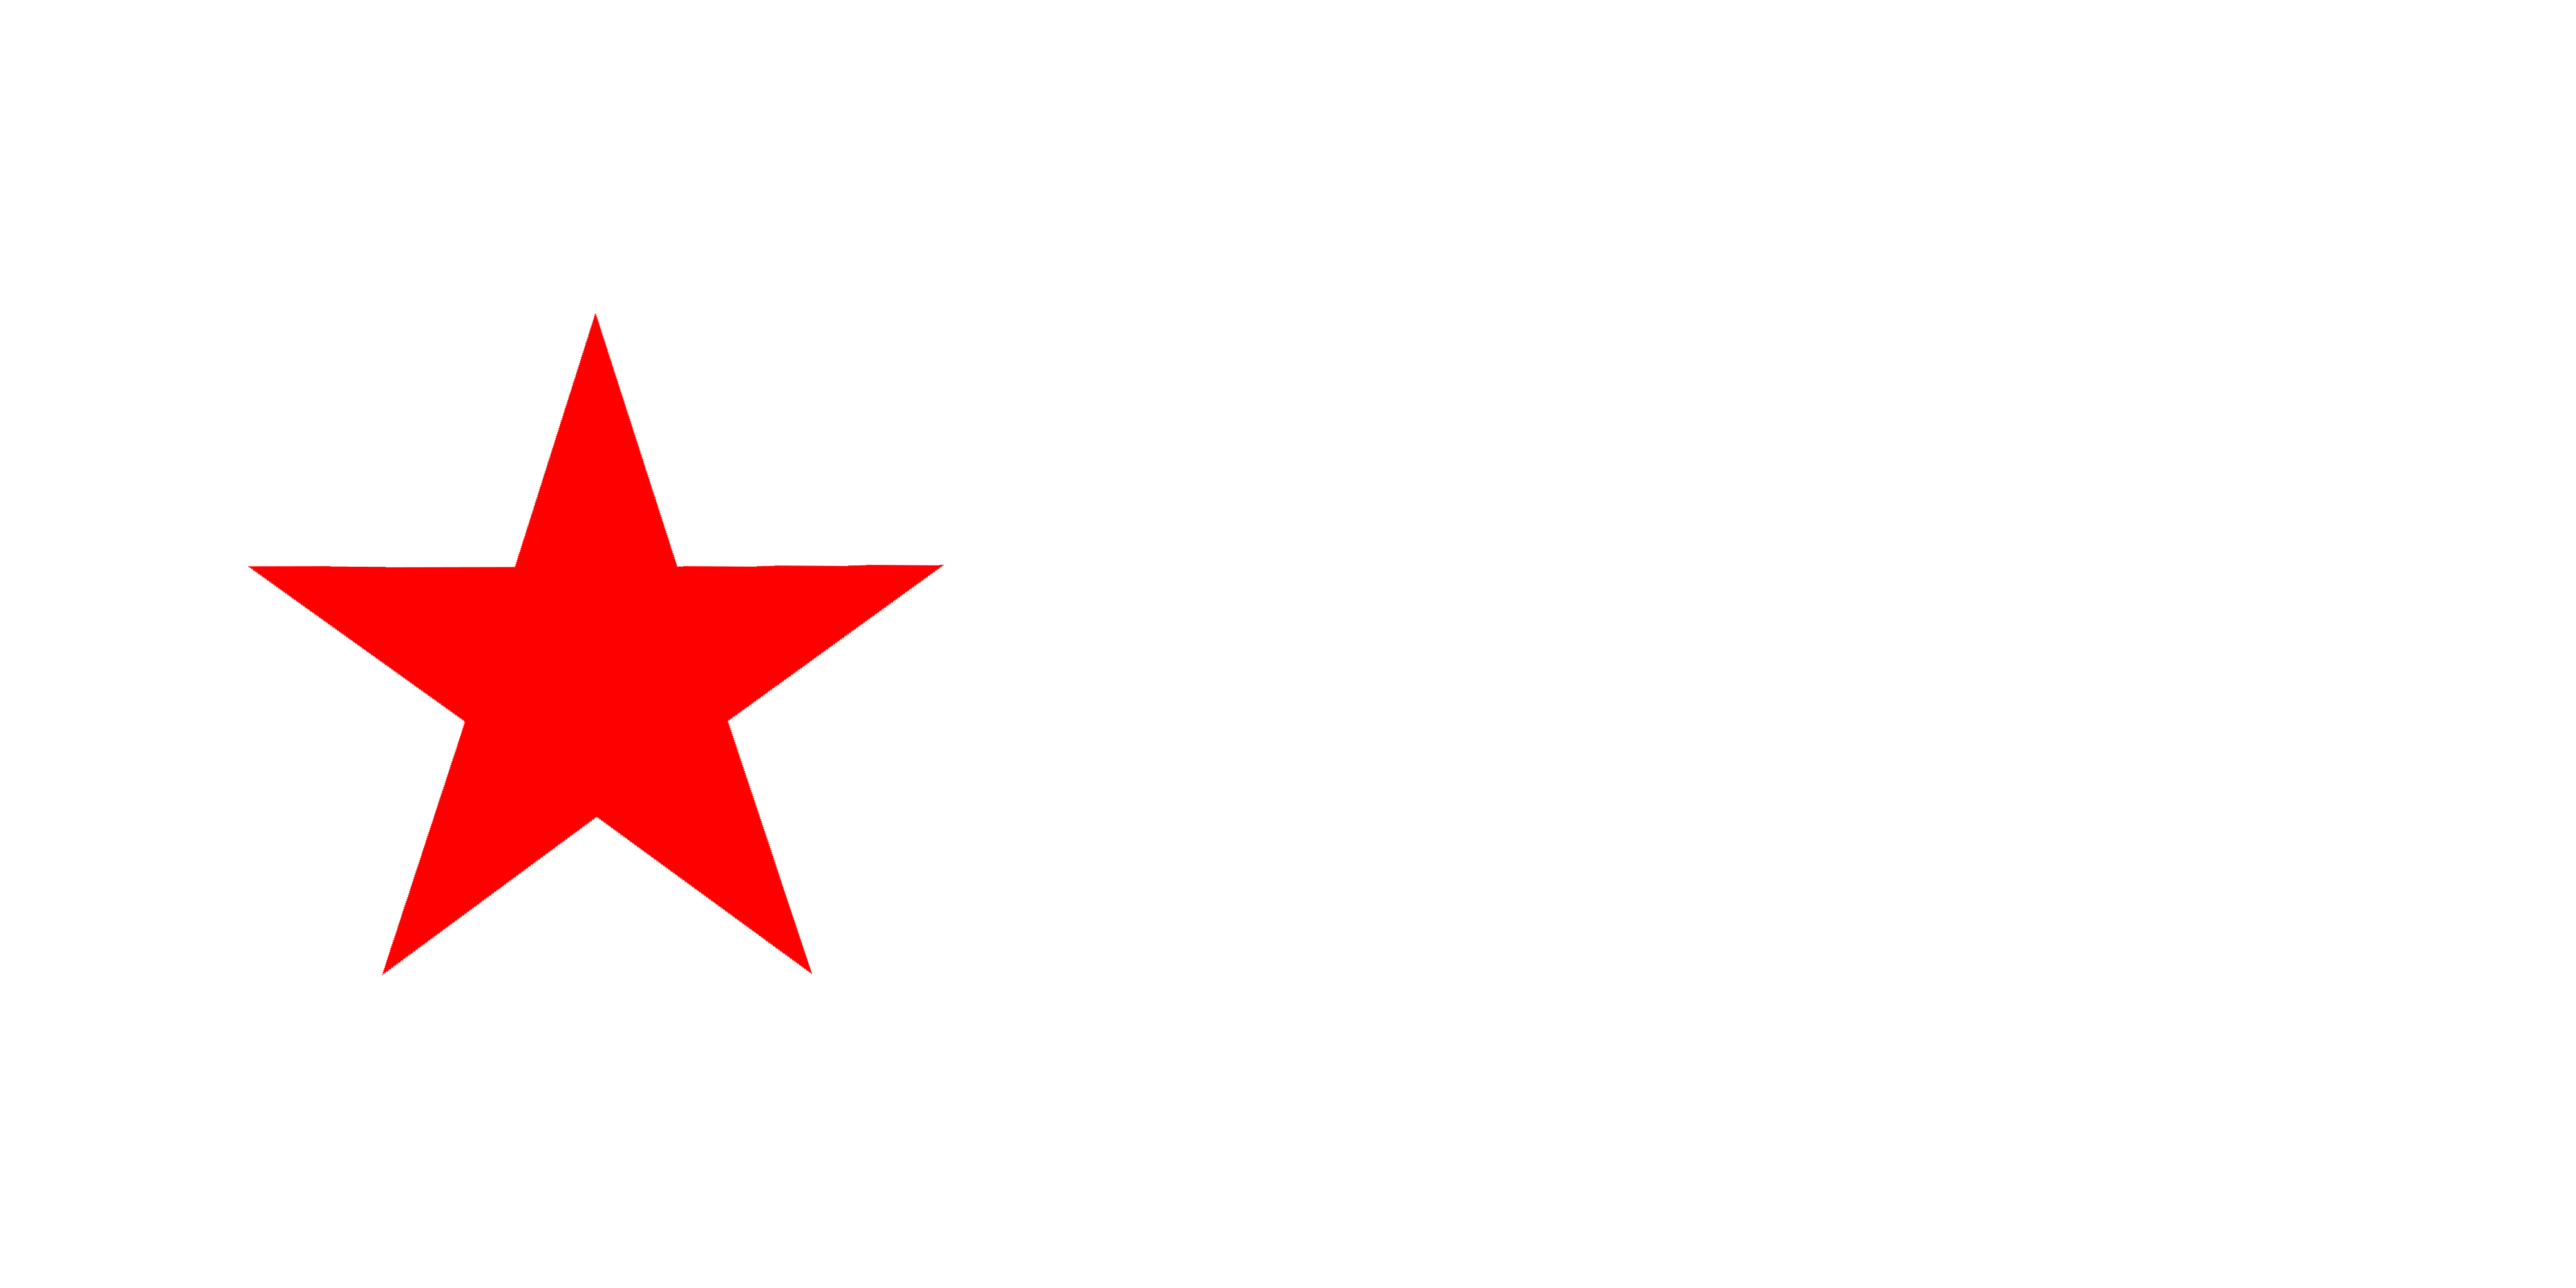 File:Red Star Flag.png - Wikipedia clipart download